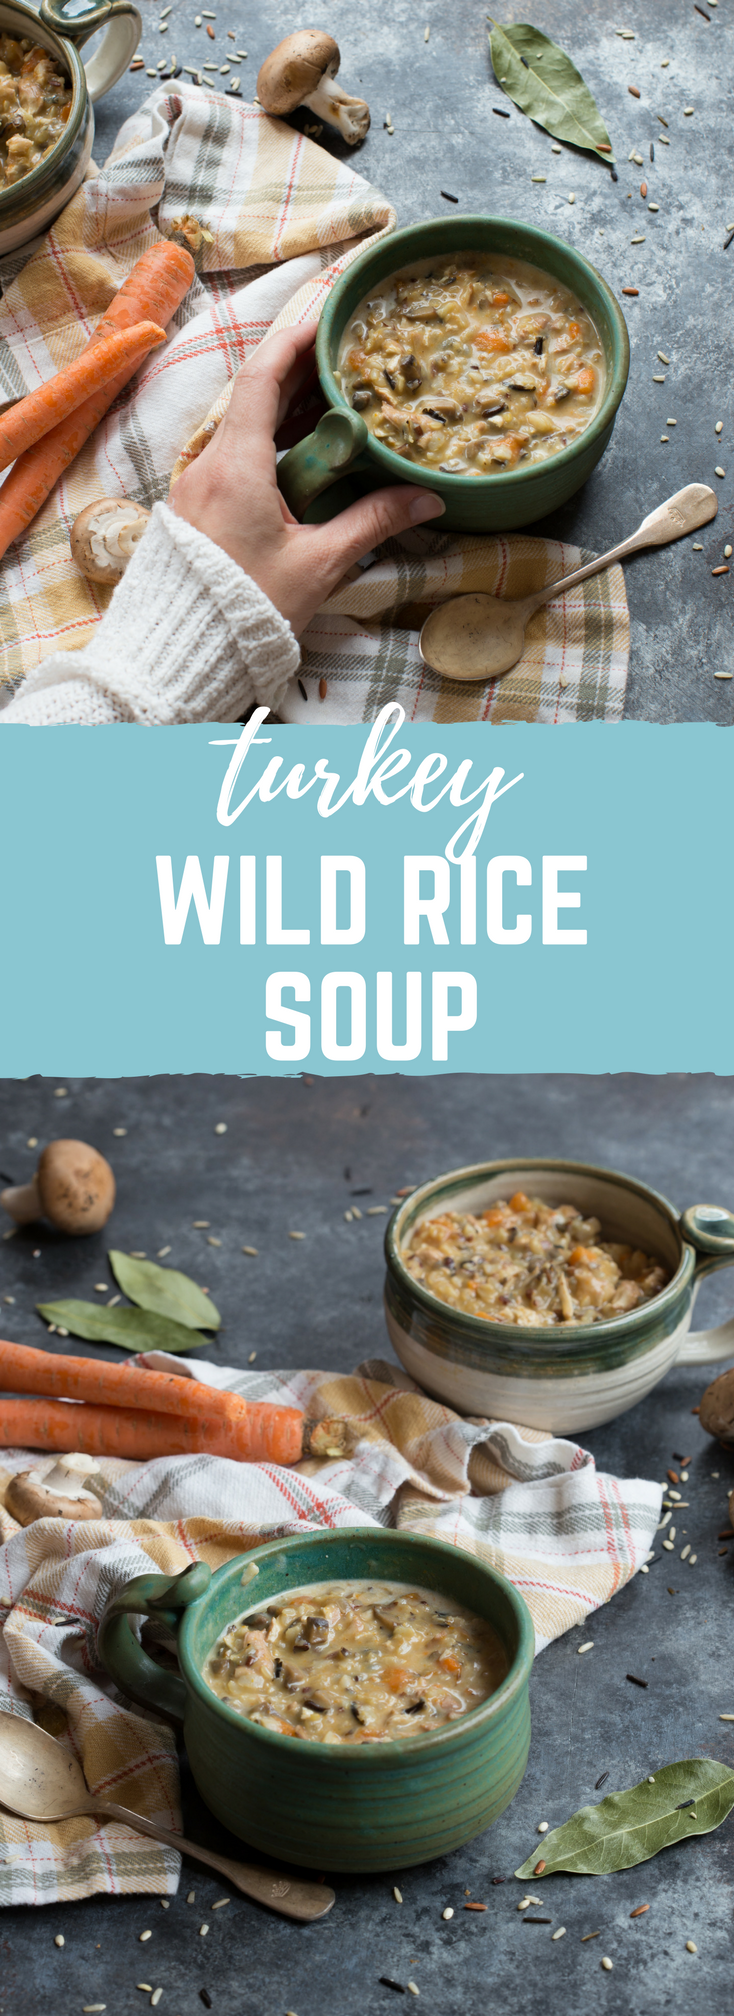 Turkey Wild Rice Soup is sure to hit every feel-good bone in your body! The flavors are rich and earthy, and the rice just gives it that full-bodied, hearty texture that is sure to fill your tummy up with comfort and warmth.